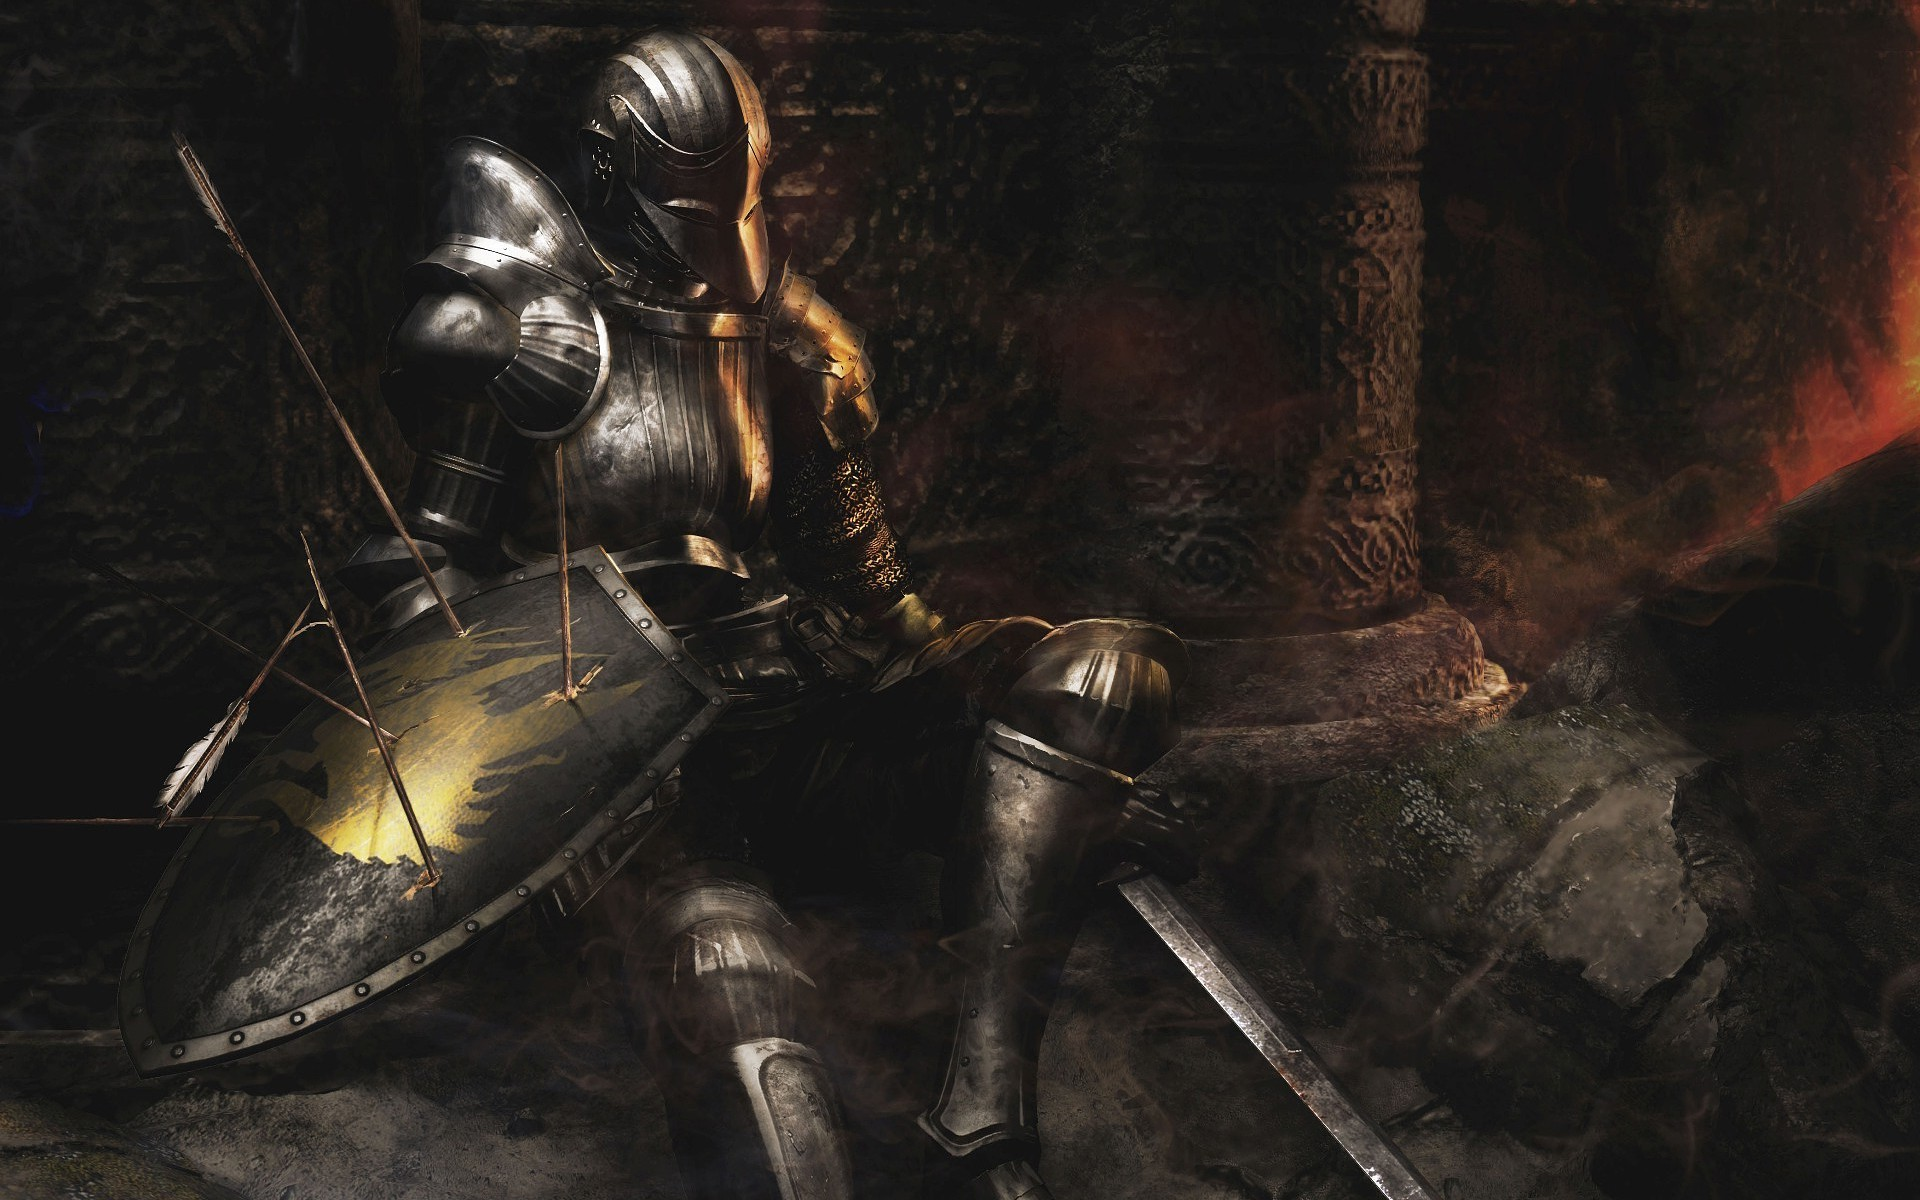 Res: 1920x1200, Demon's Souls HD Wallpapers 7 - 1920 X 1200